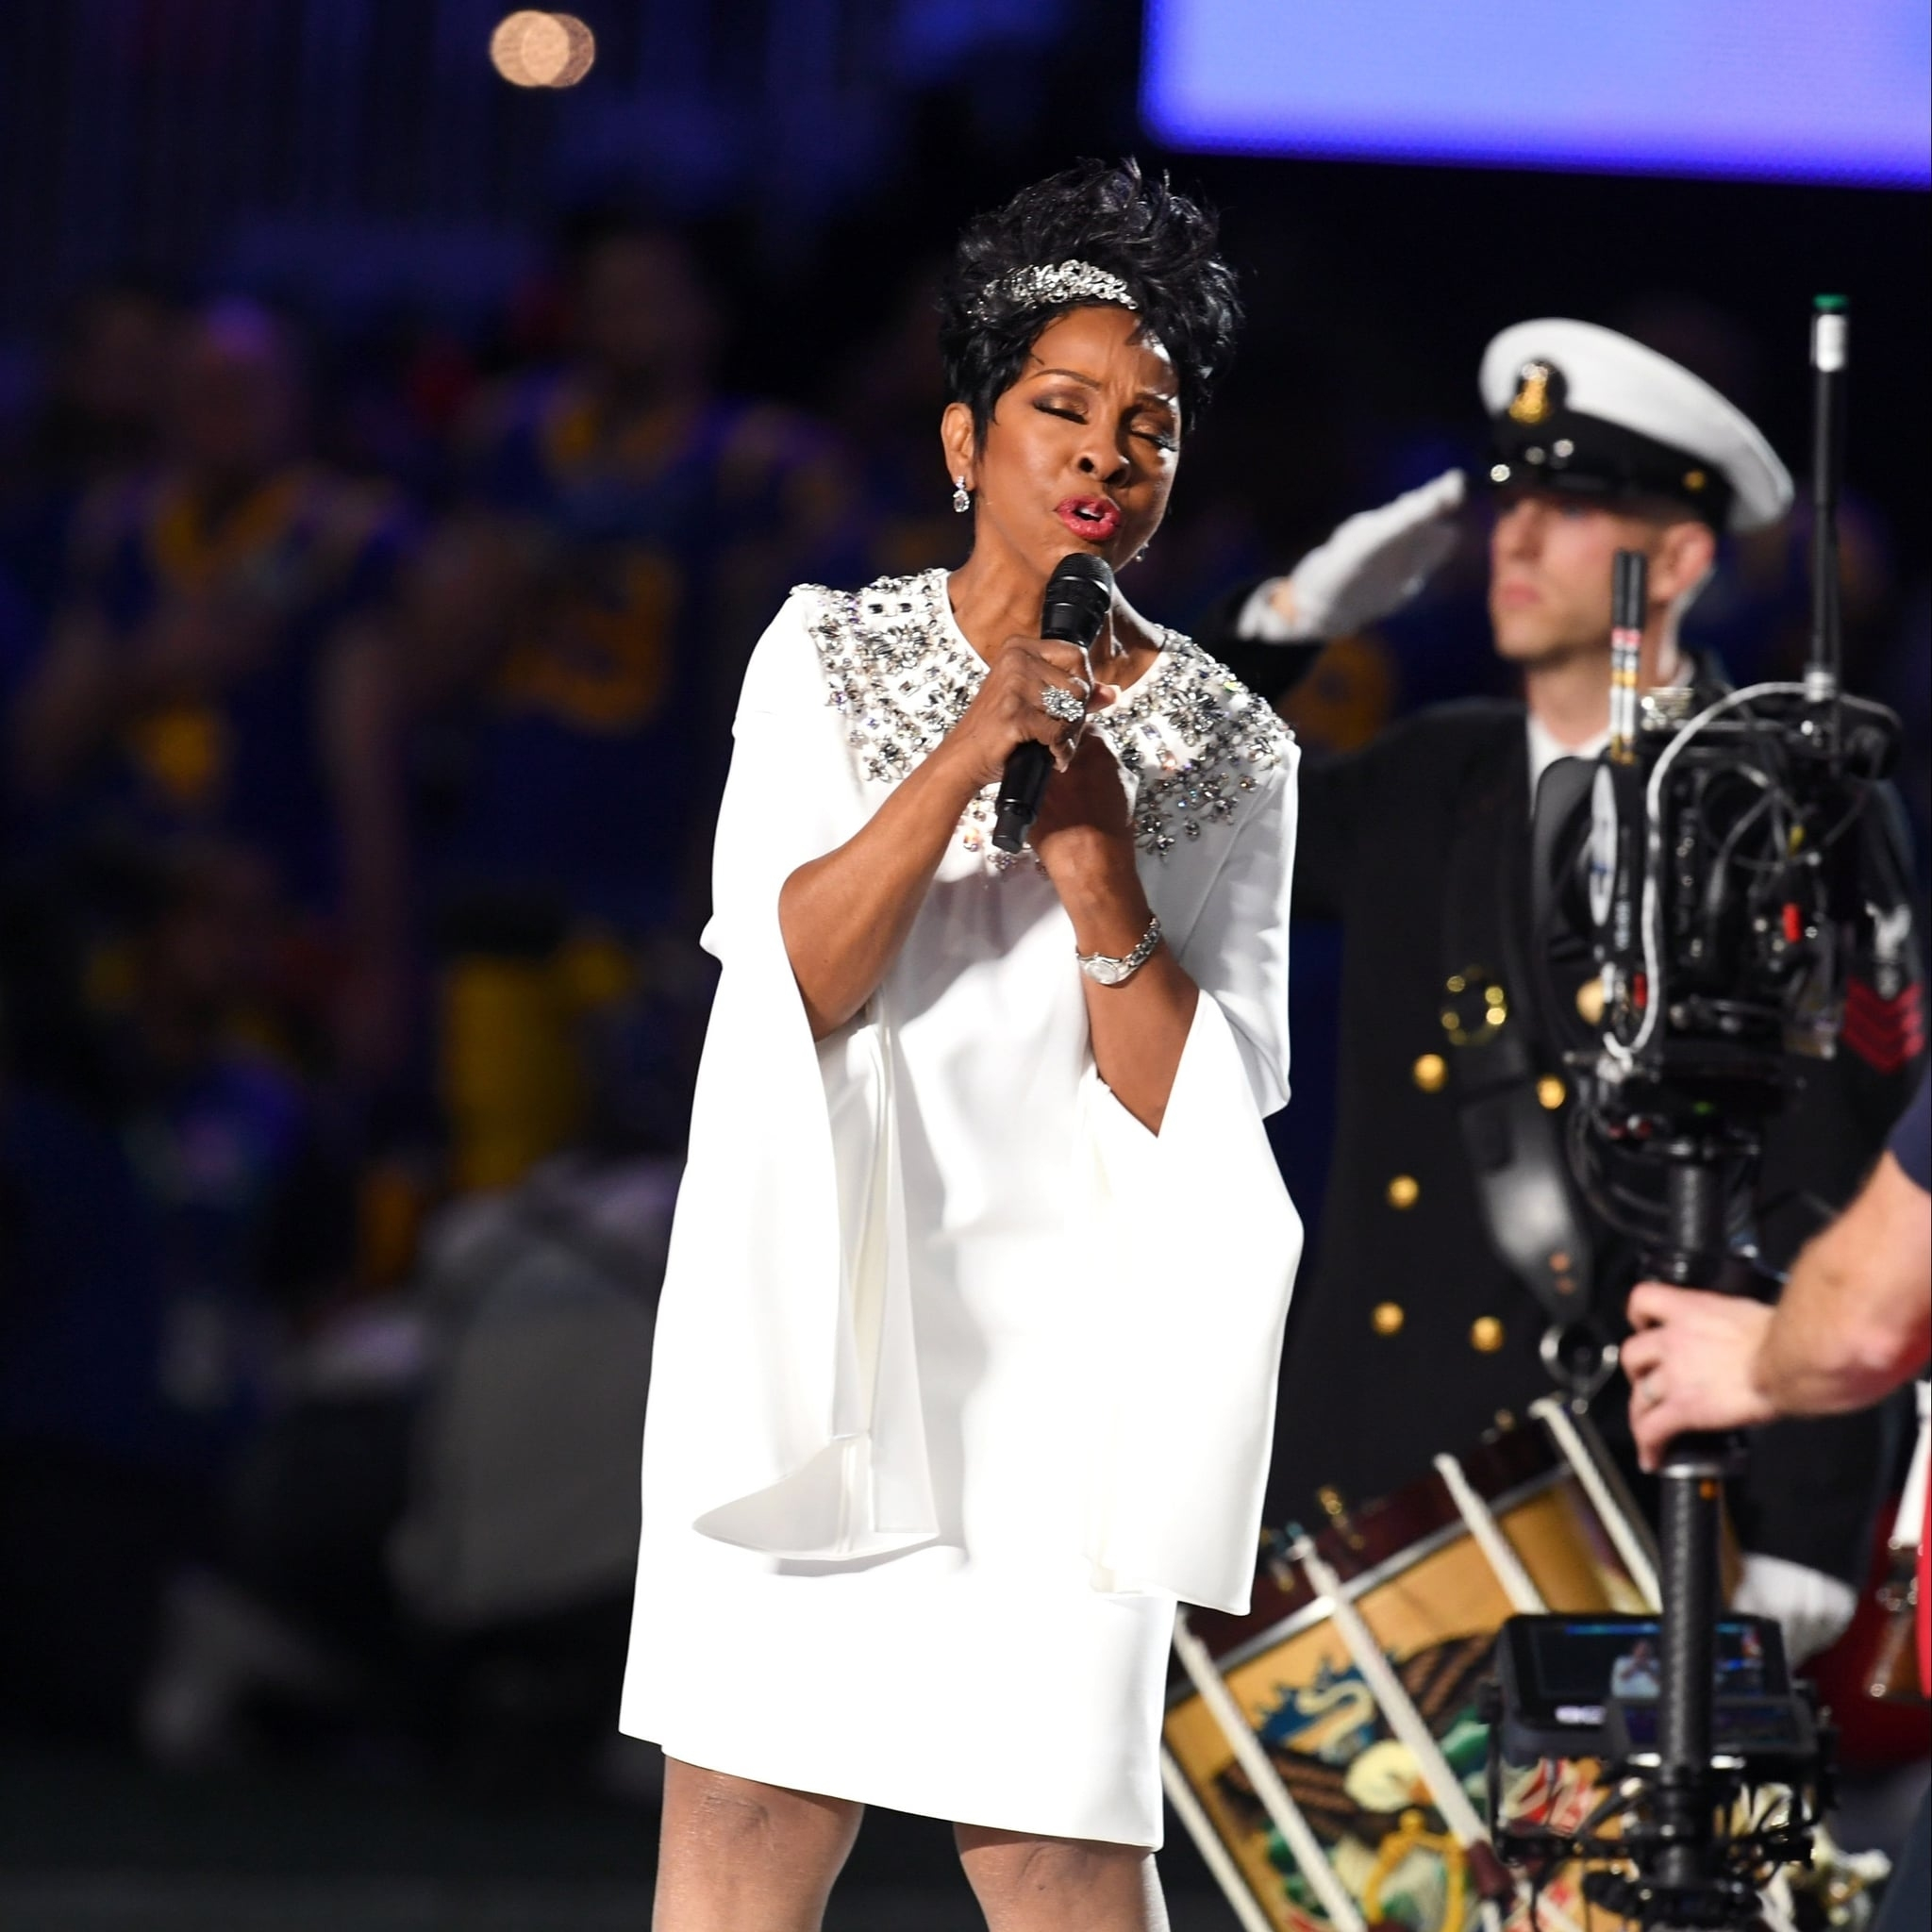 Gladys Knight Sings The National Anthem At Super Bowl 2019 throughout Gladys Knight Super Bowl 2019